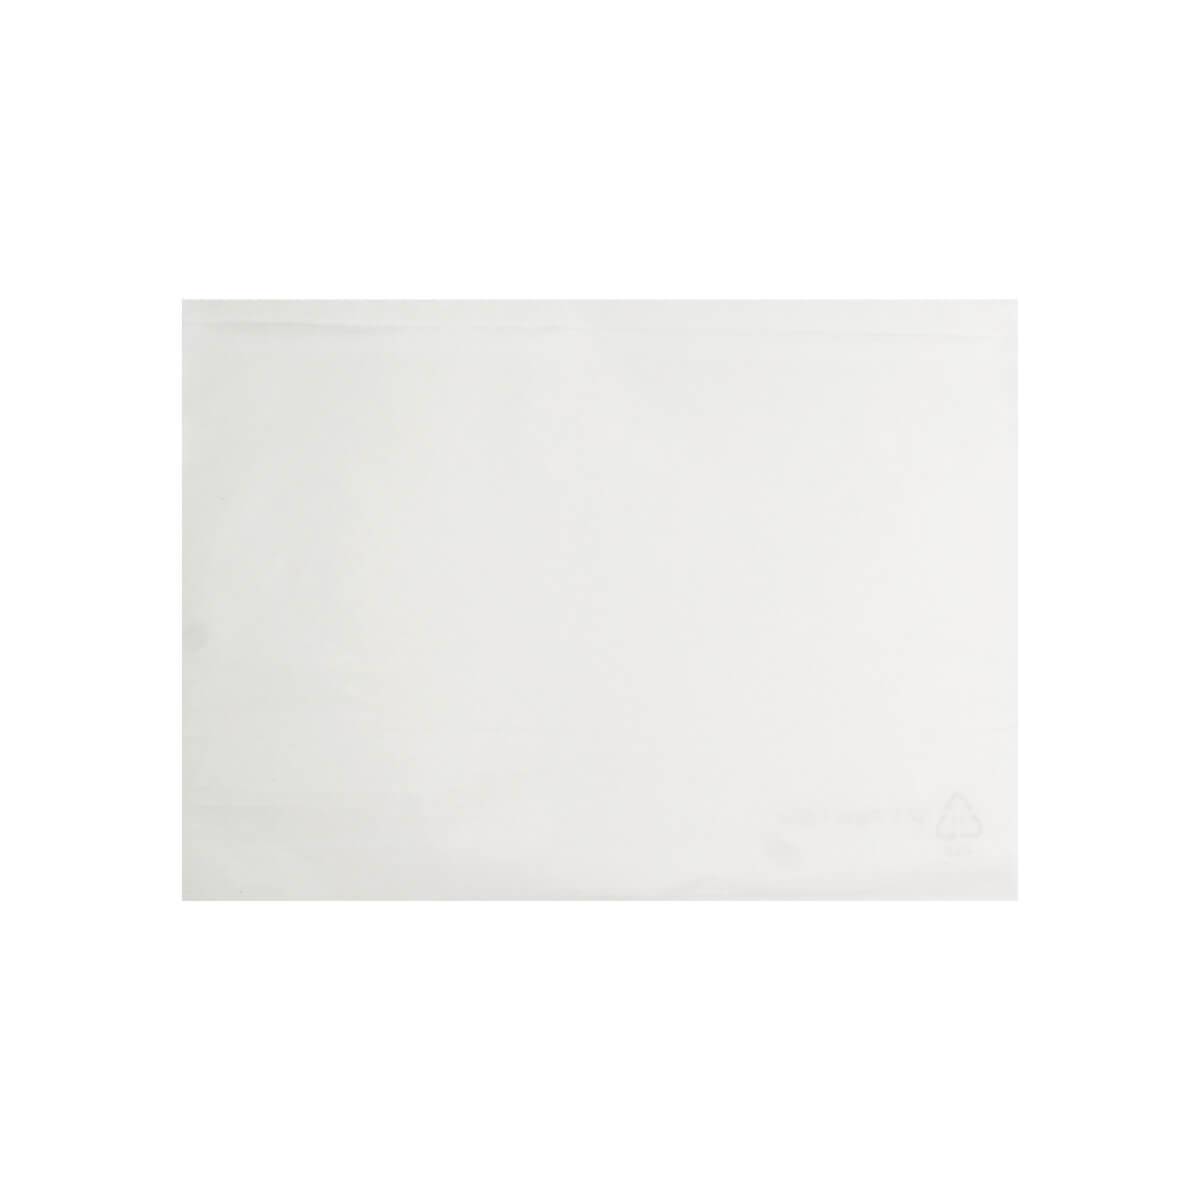 C5 RECYCLABLE PAPER DOCUMENTS ENCLOSED WALLETS (229 x 162mm)